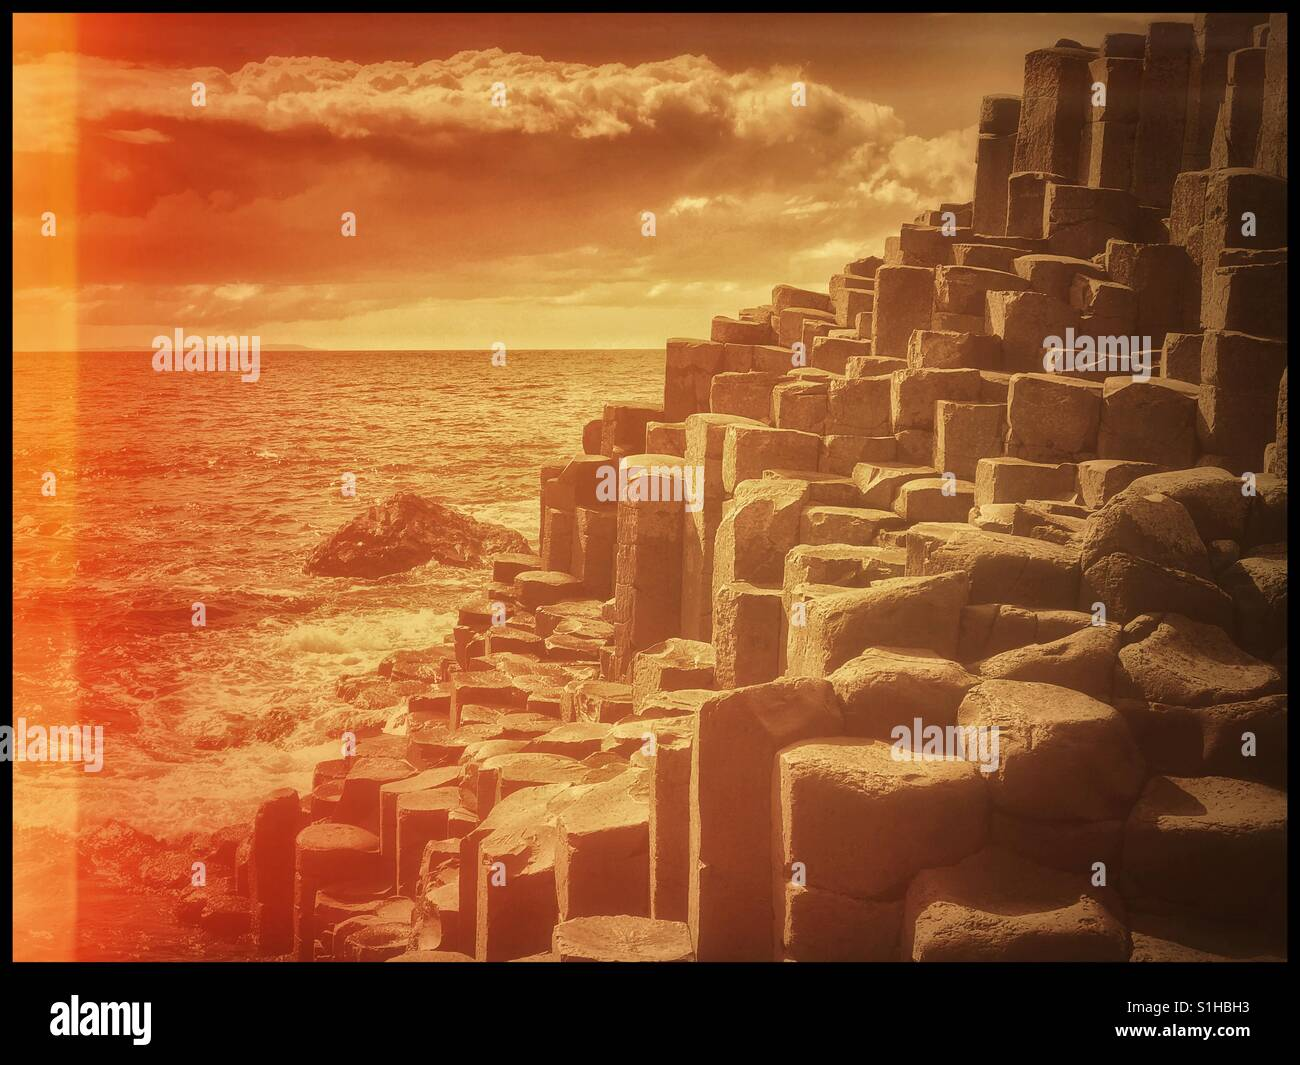 An analogue, film effect image of the famous basalt columns at Giant's Causeway in Co. Antrim, Northern Ireland, - Stock Image